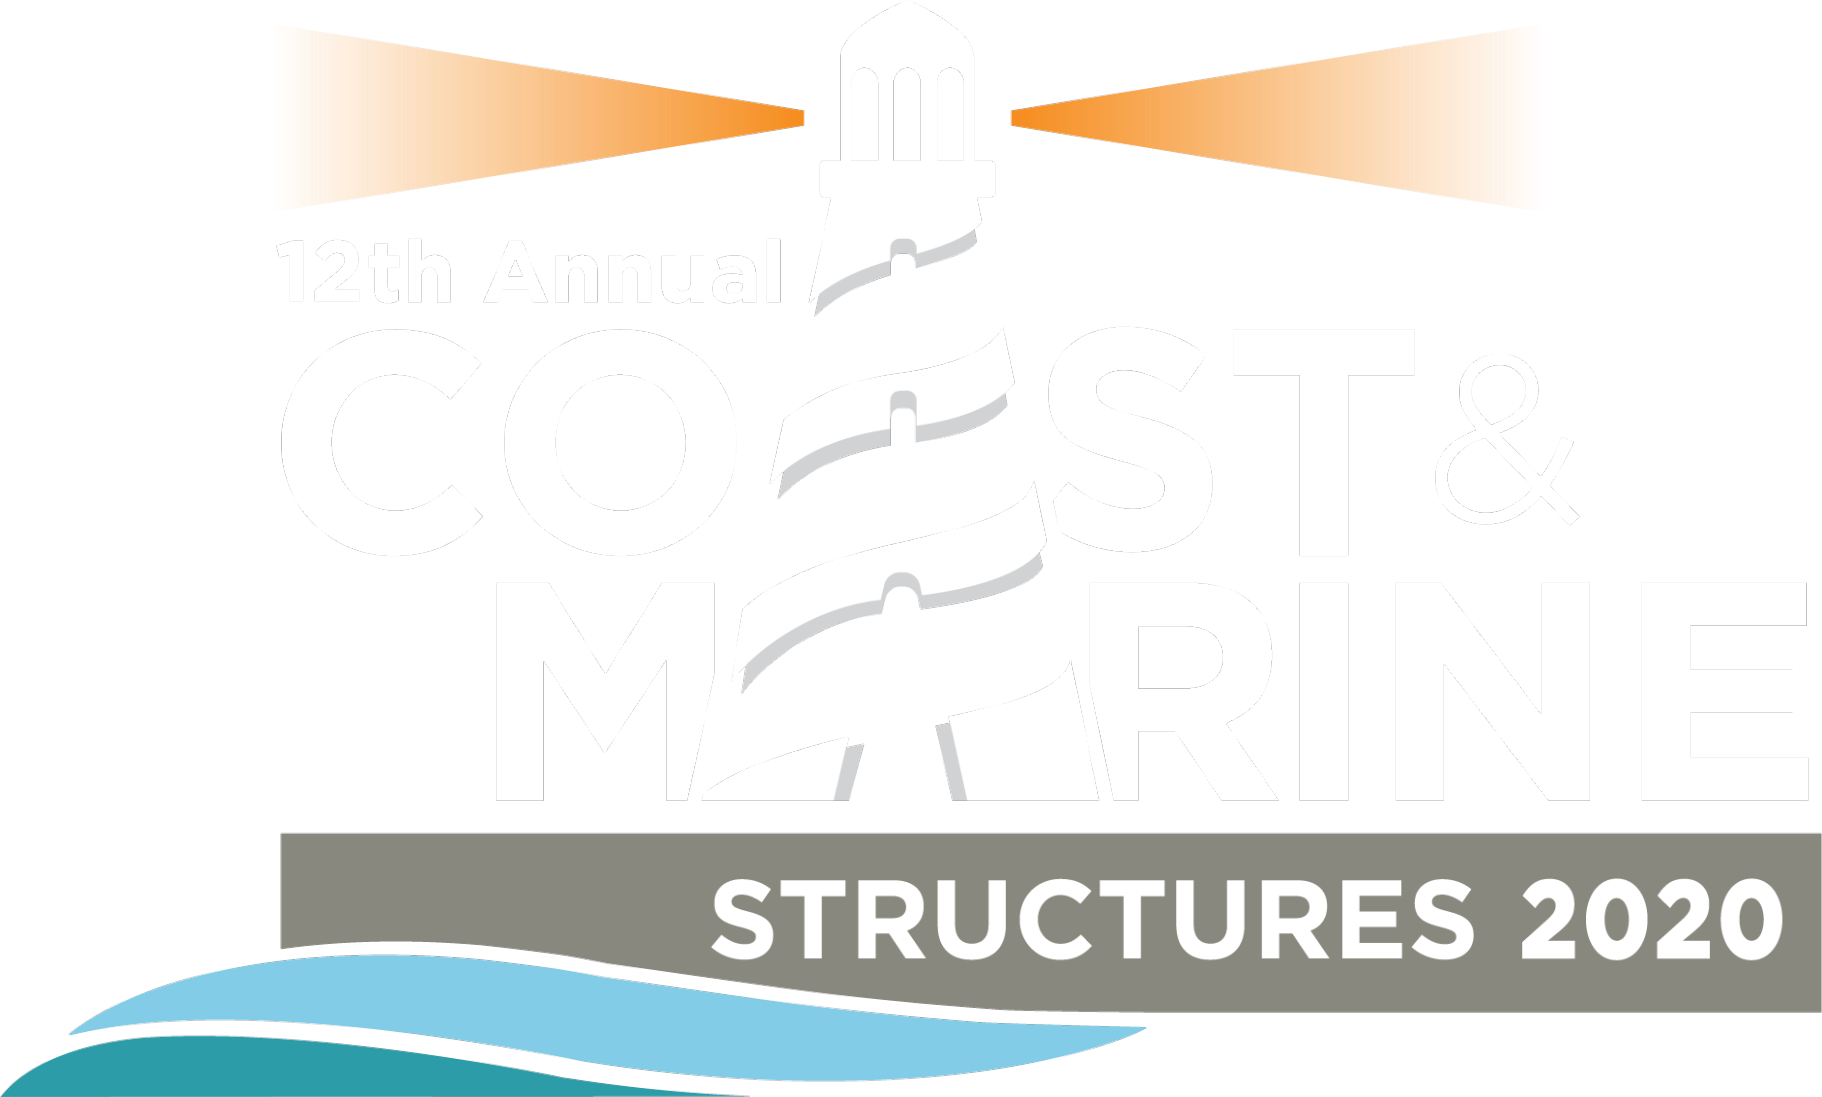 12th Annual Coast & Marines Summit 2020